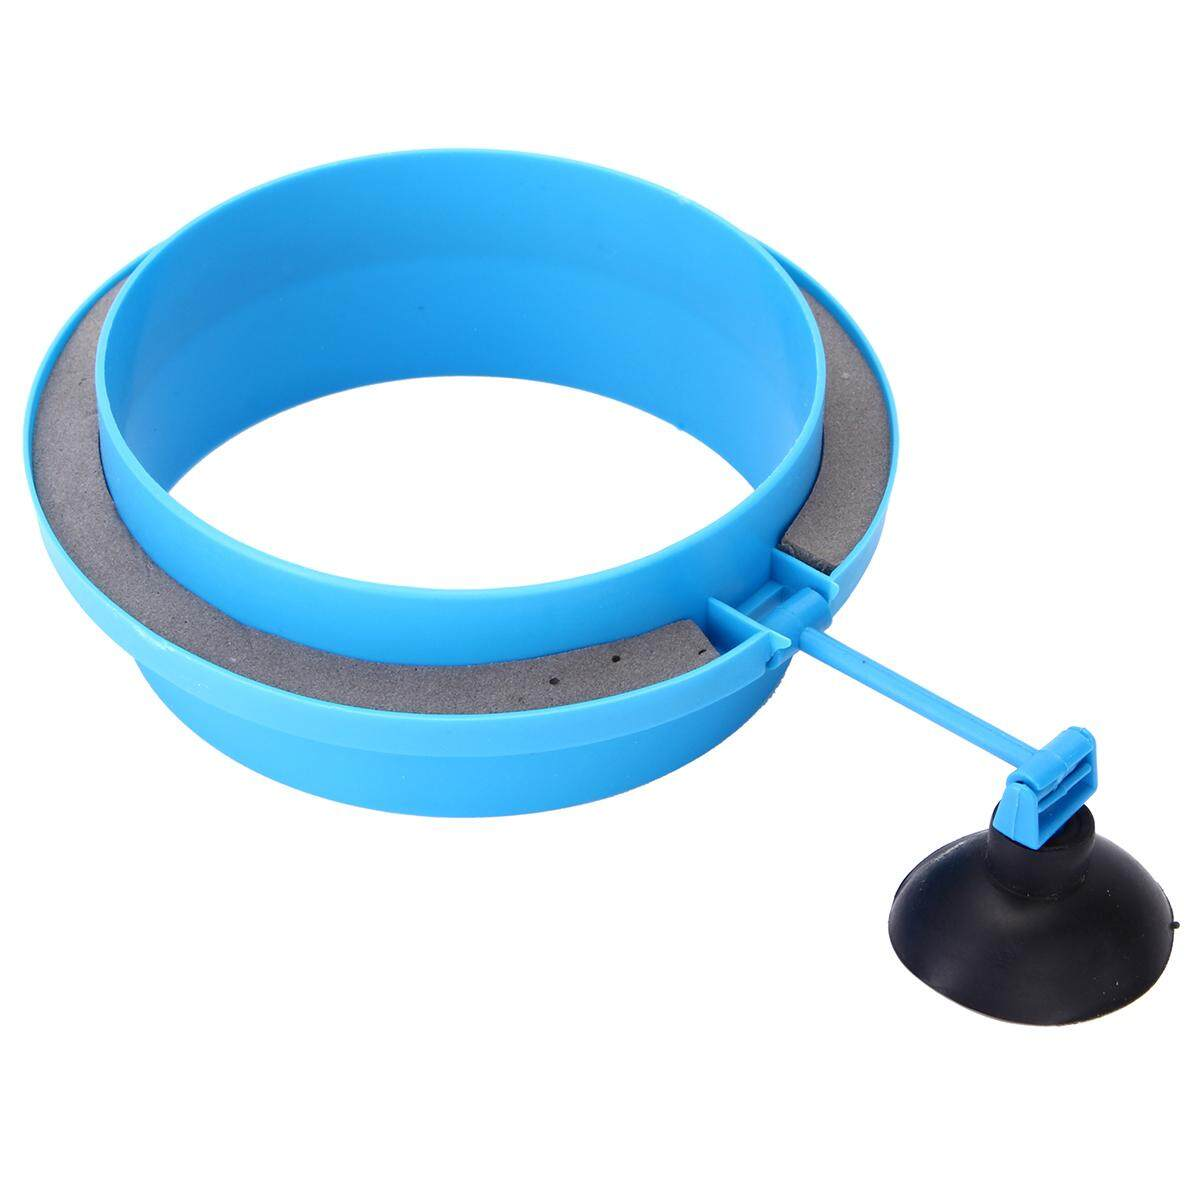 Feeding Ring Aquarium Fish Tank Station Floating Food Tary Feeder Double Layer Circle By Glimmer.